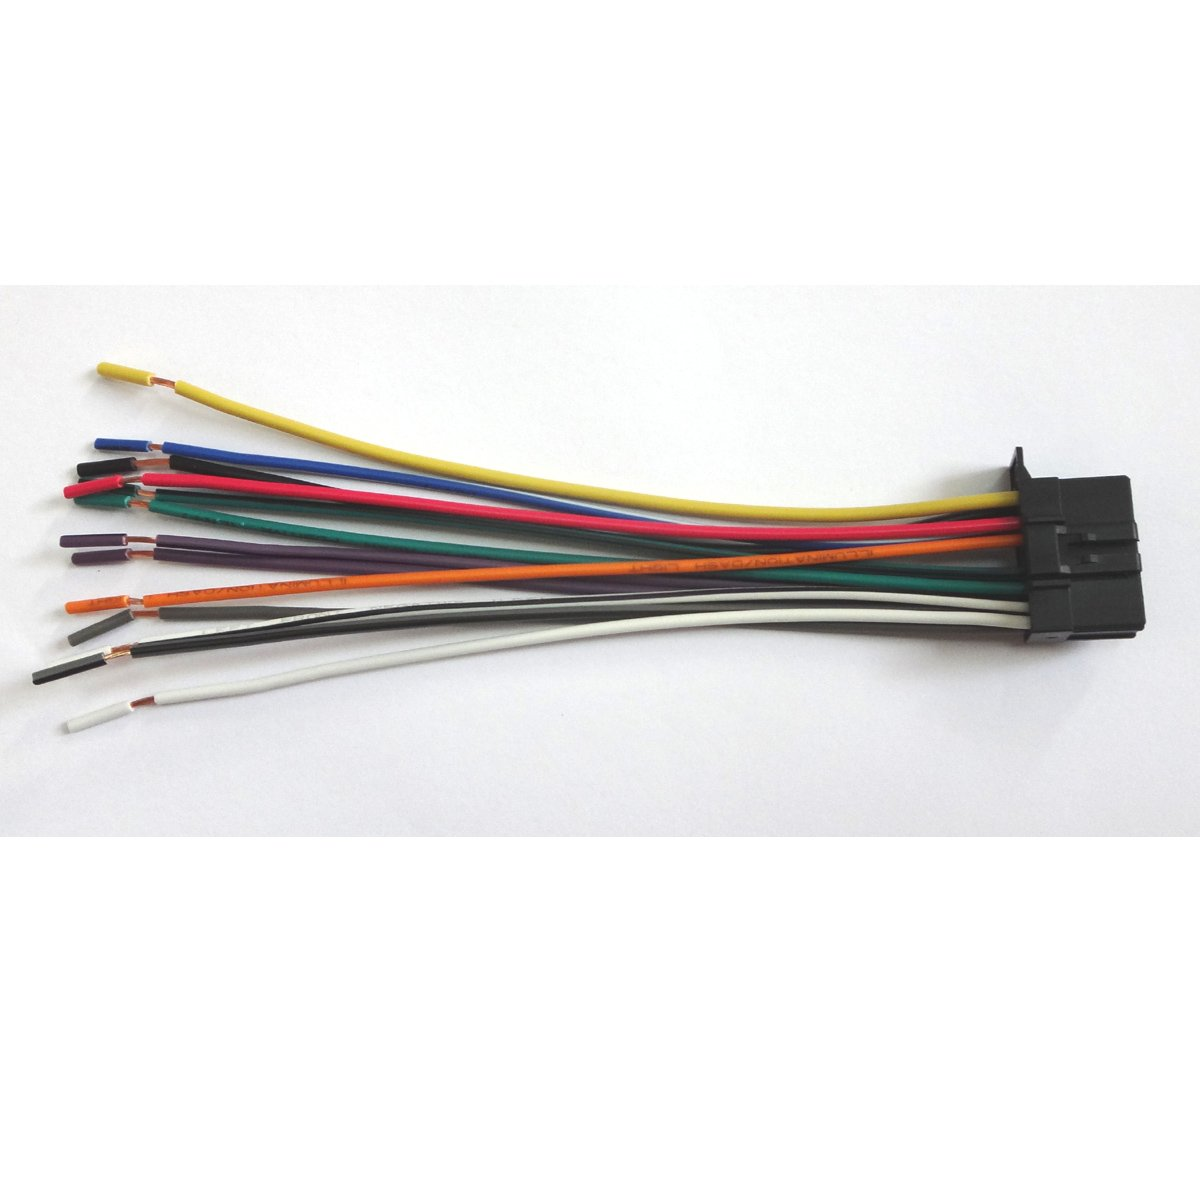 613jyQzY LL._SL1200_ amazon com for pioneer wire harness deh 12e deh 22ub deh 2200ub pioneer deh 2200ub wiring harness at mifinder.co